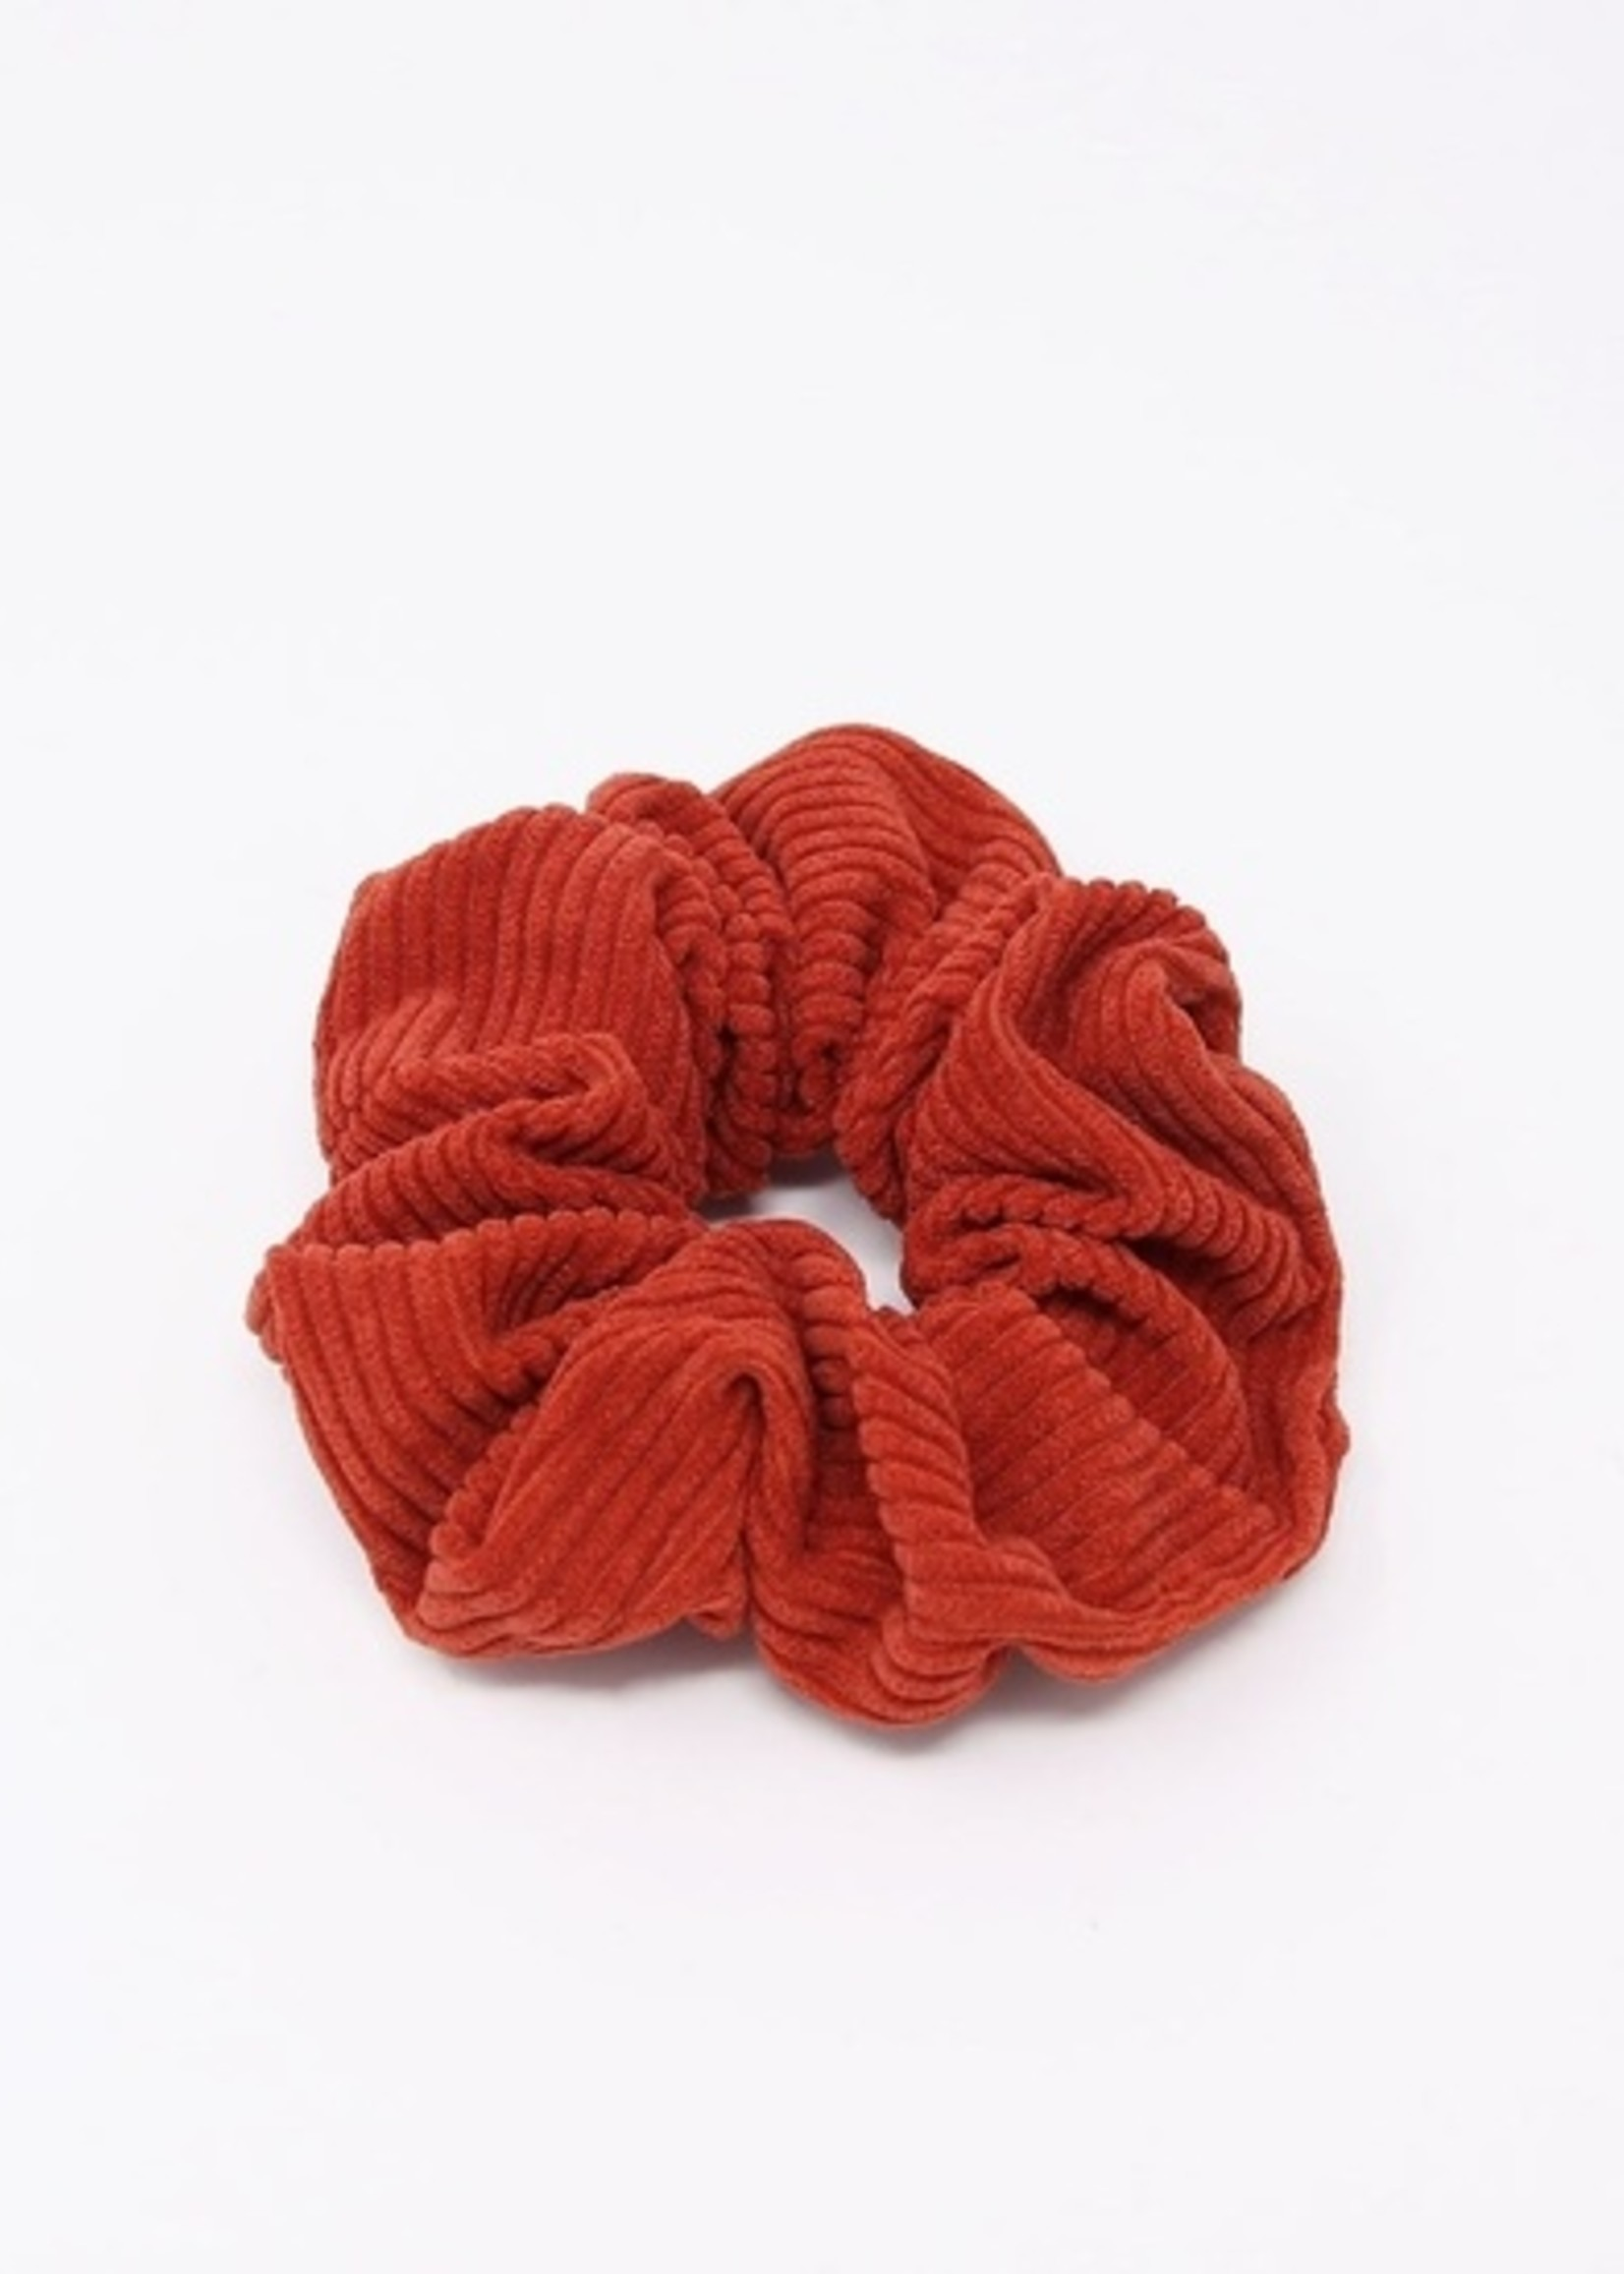 StasiAccessories Large Corduroy Scrunchies